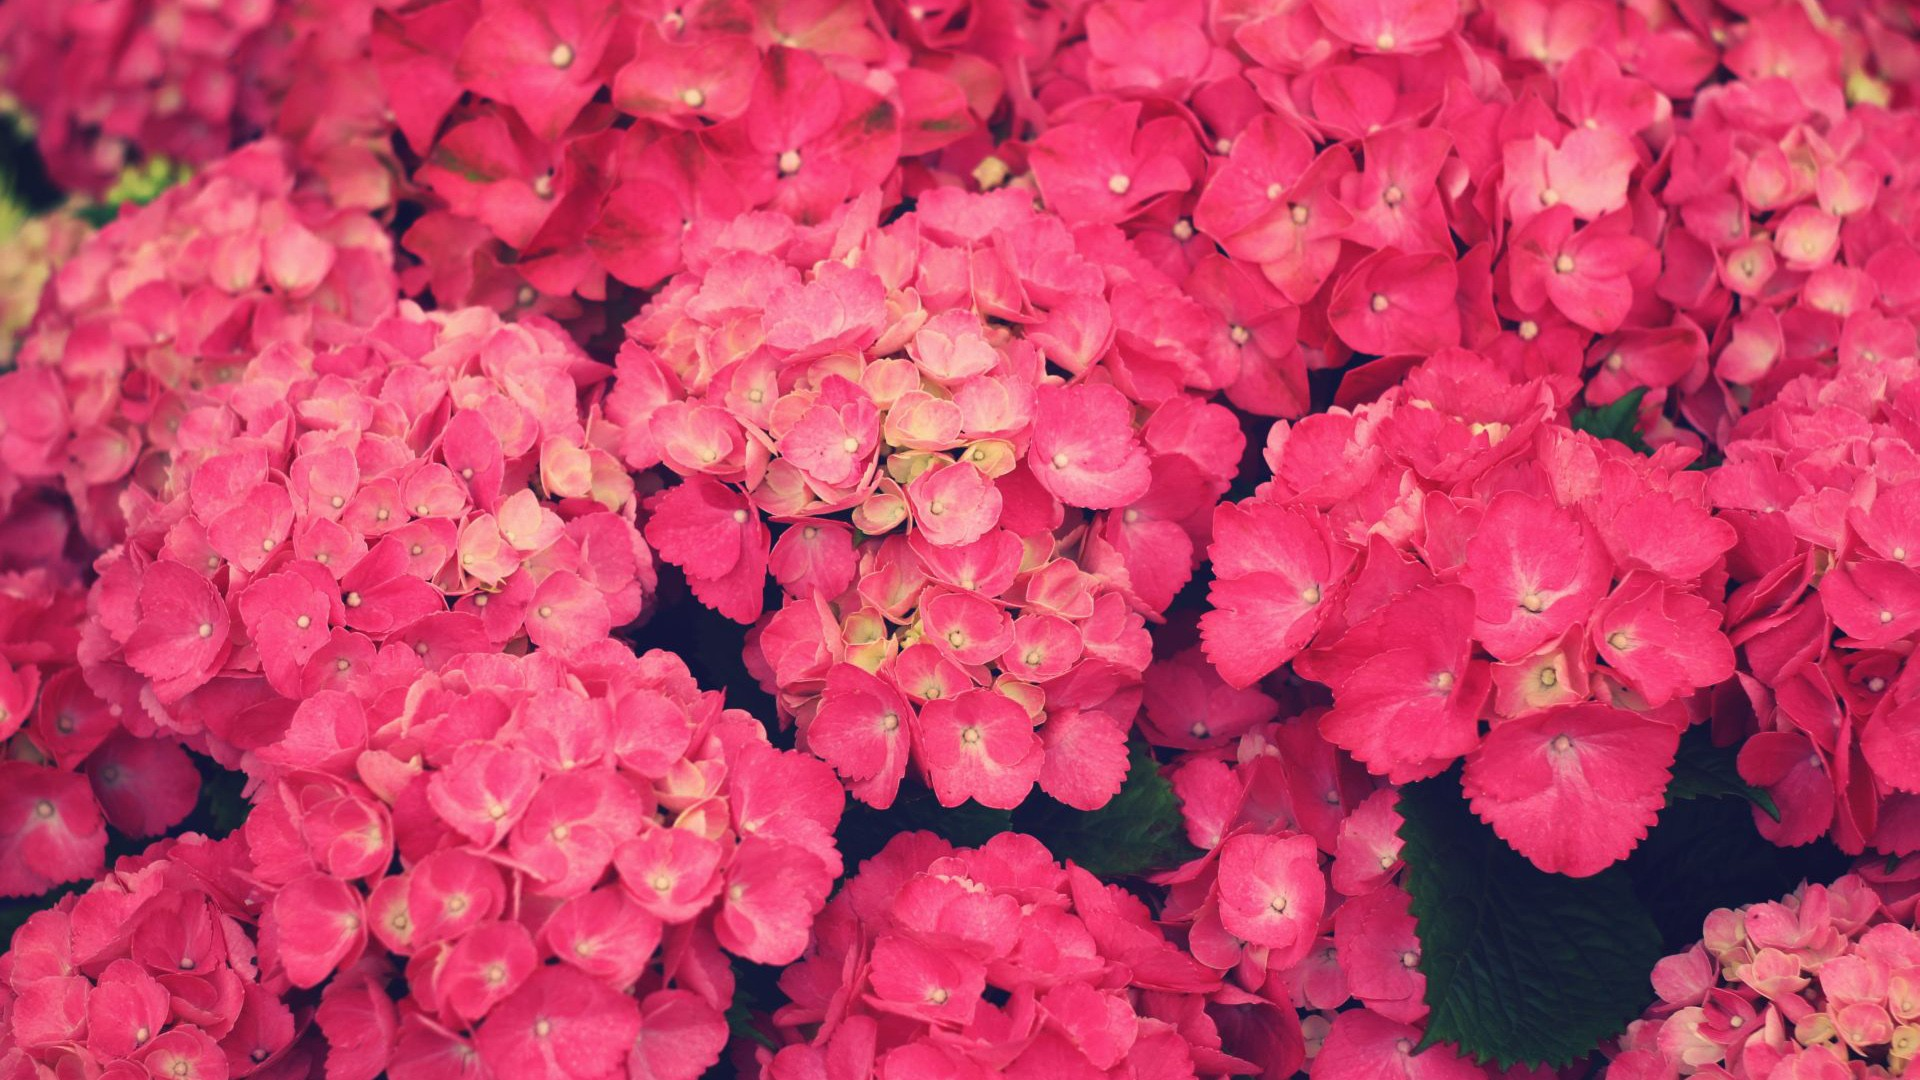 wallpaper pink flowered flower - photo #35